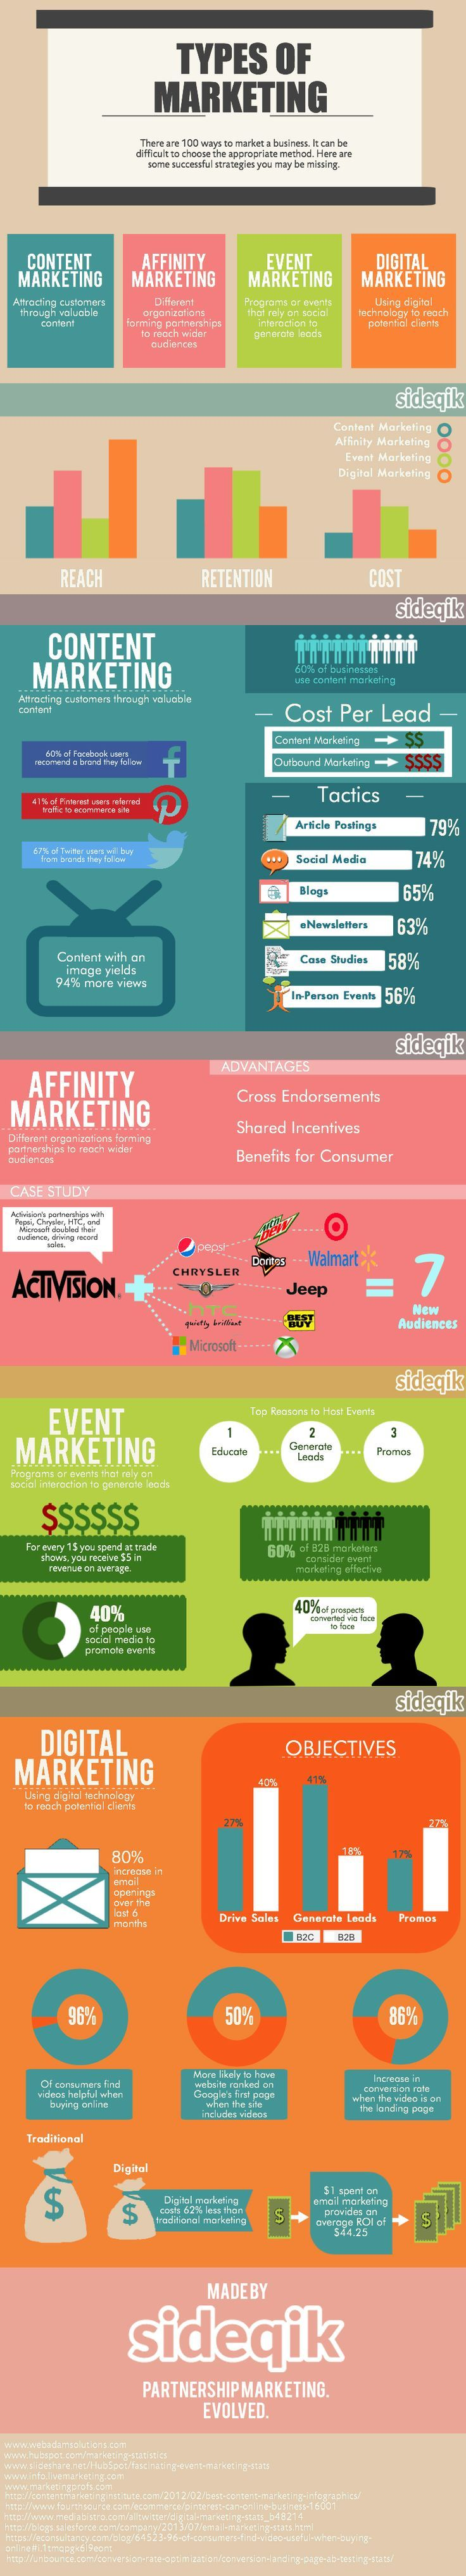 Need a new marketing strategy? We provided info on some hot types of marketing you need to try now!